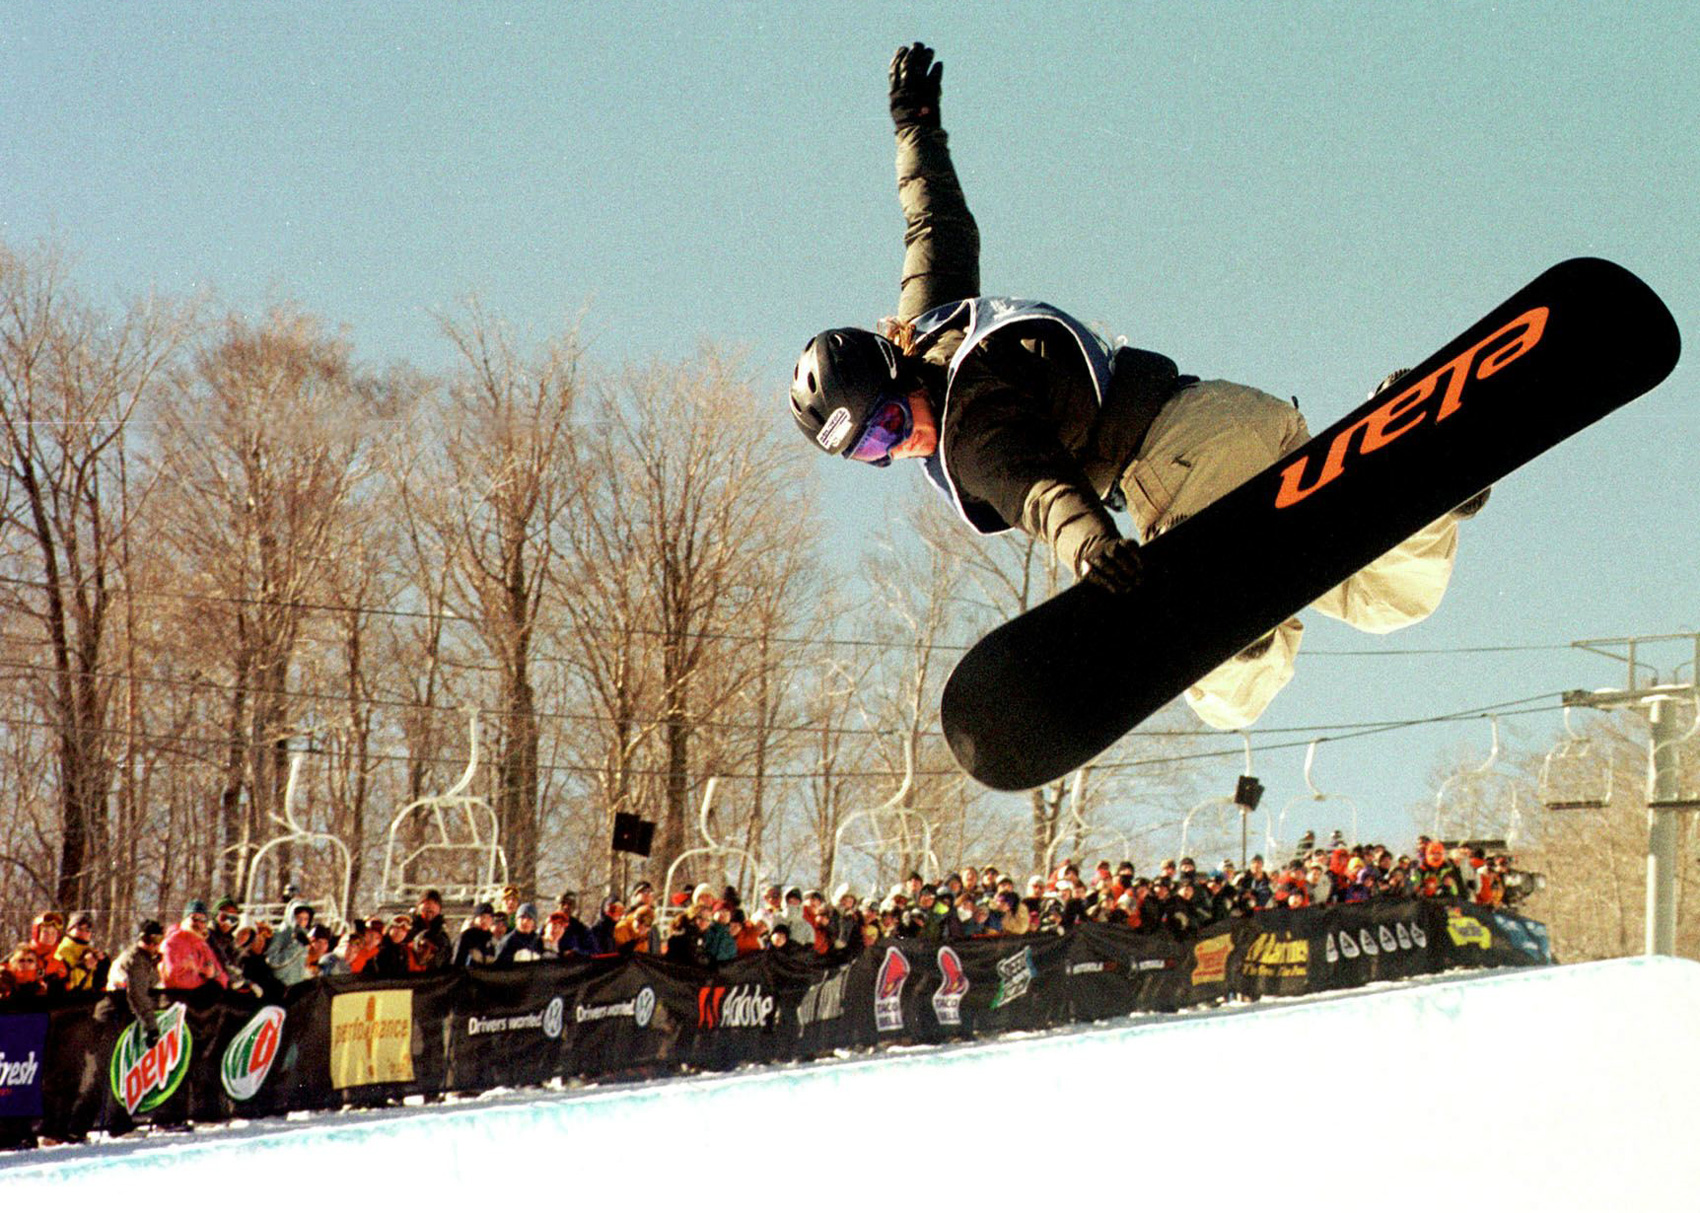 In 2000, 13-year-old Shaun White and 16-year-old Kelly Clark made their X Games debuts. It would take the duo two years to win their first X medals (White: two silver, in SuperPipe and Slopestyle; Clark, gold in Superpipe) before later becoming the most dominant halfpipe competitors in the history of the sport.